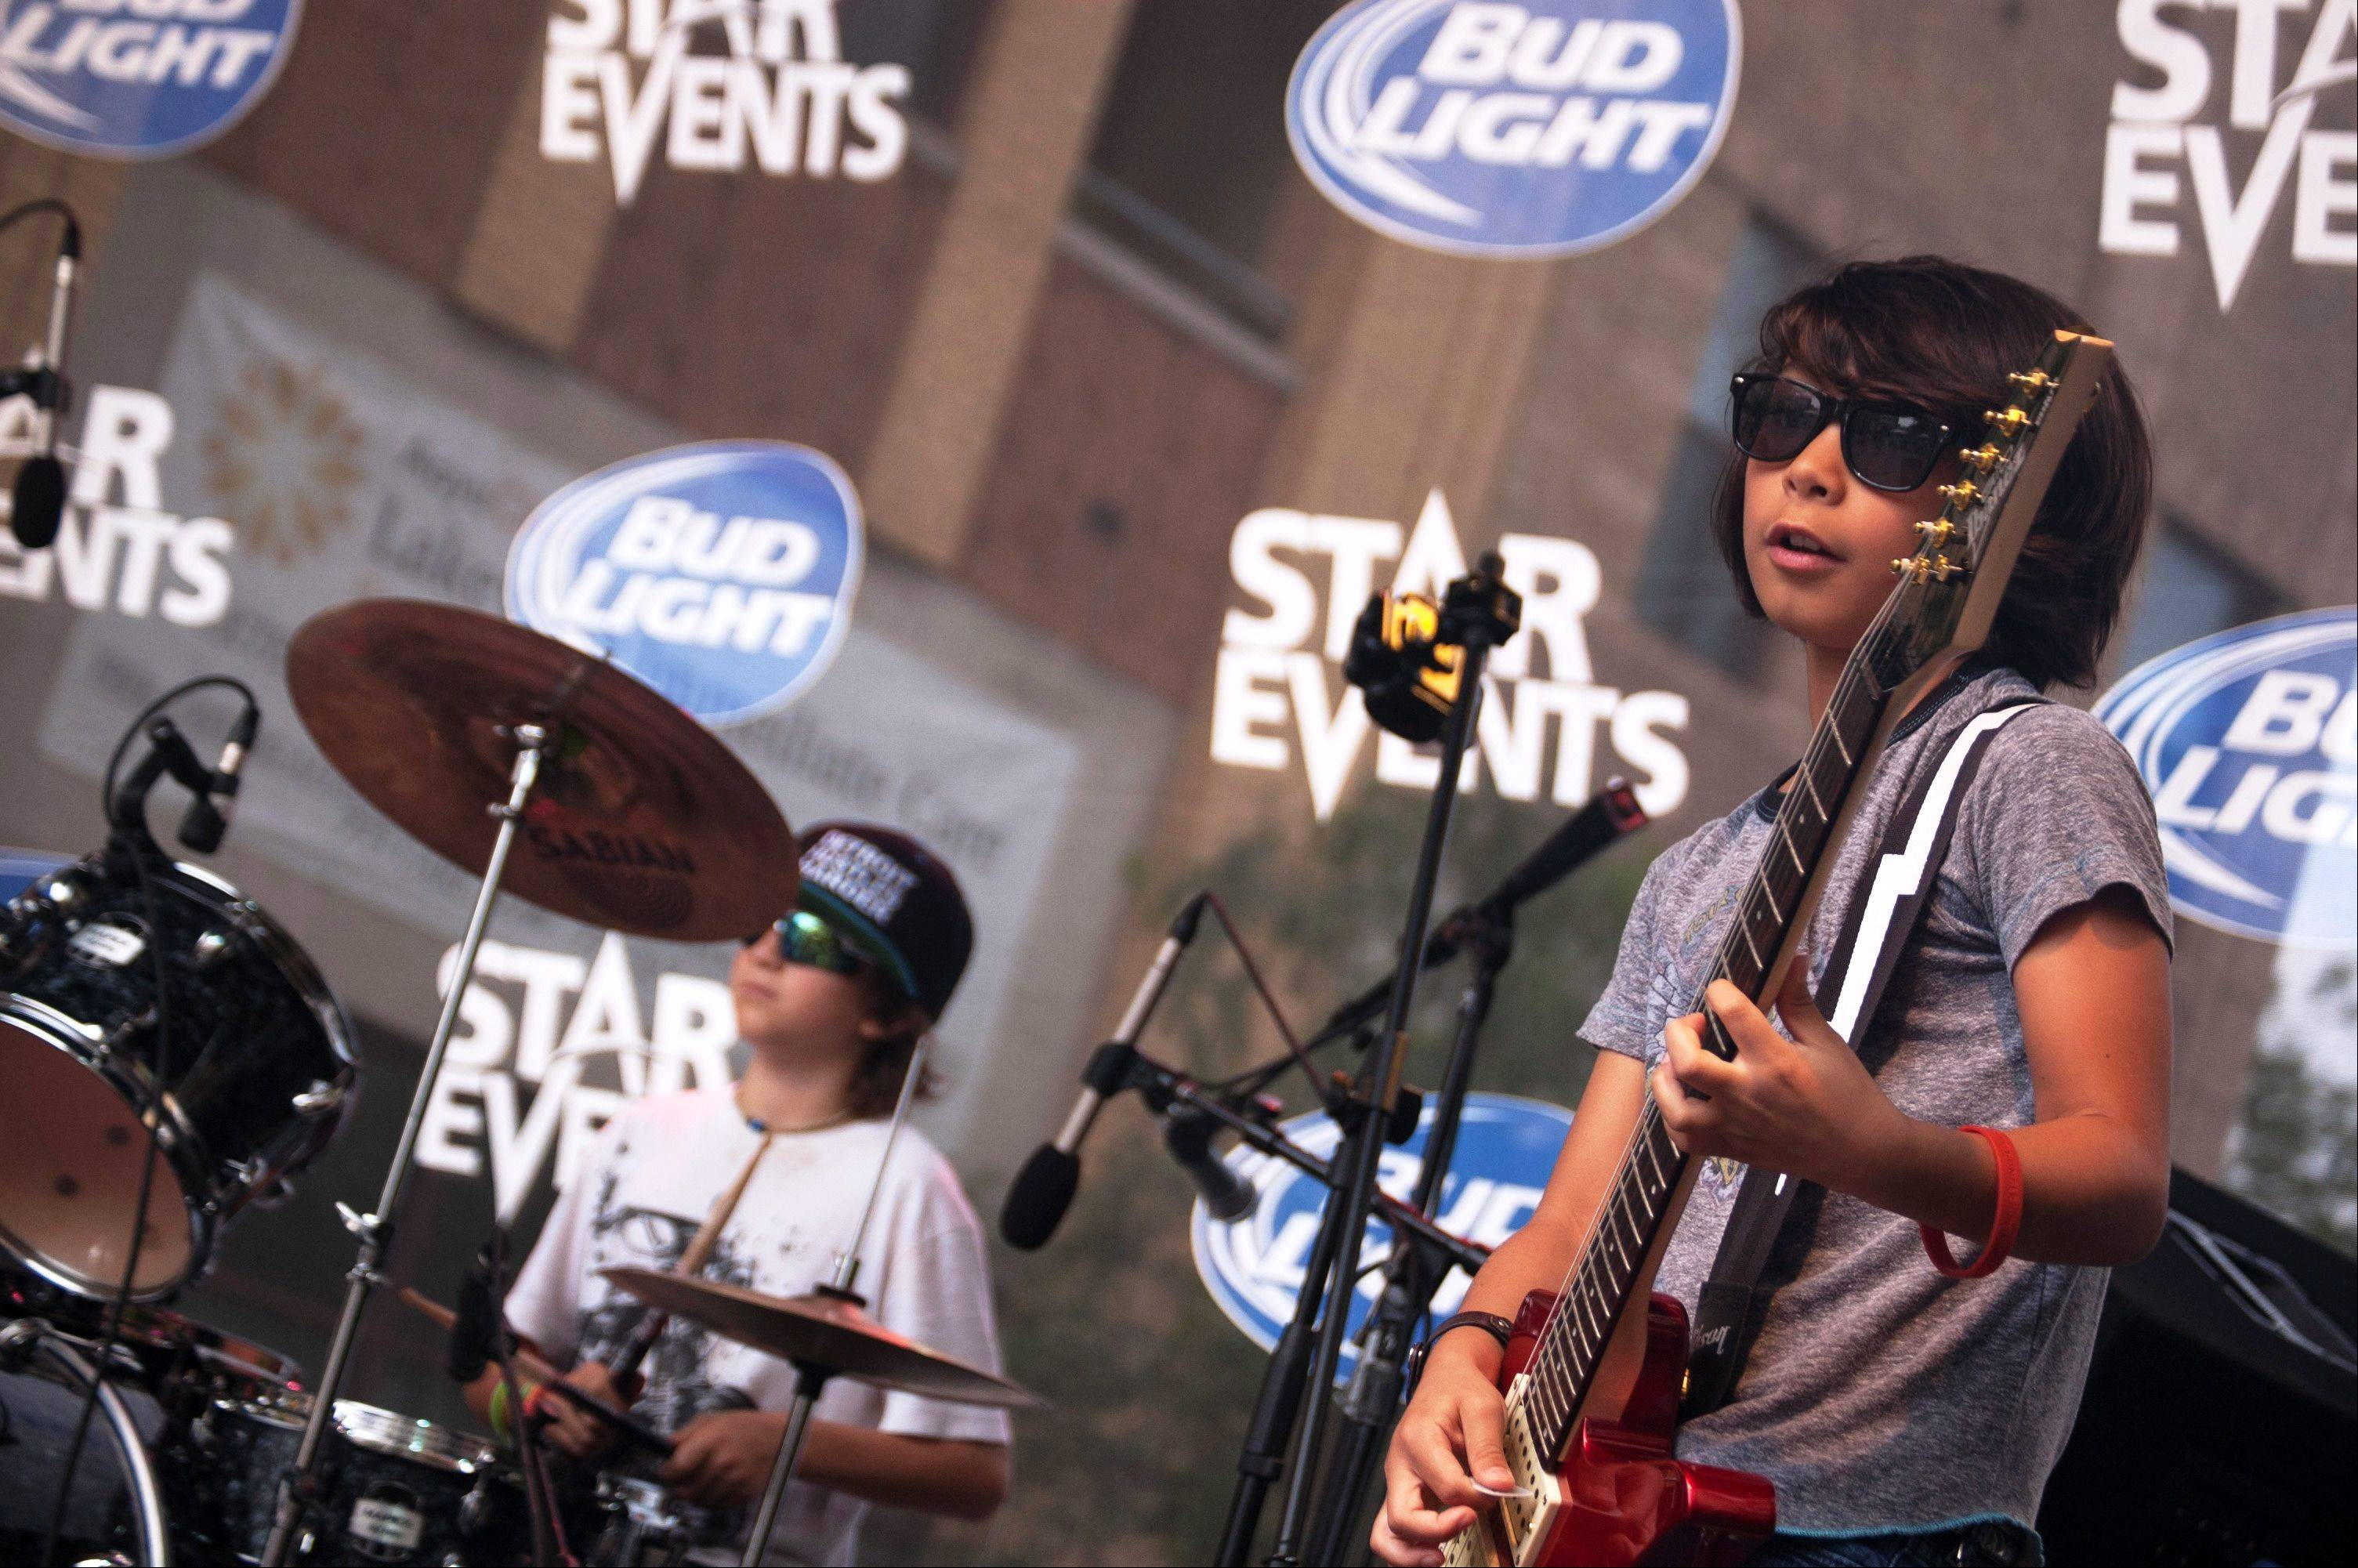 Drummer Cohen Bessler, 10, of St. Charles, and guitarist Danny Cappelli, 8, of Geneva, during LiveWire's performance July 6 at Taste of Lakeview in Chicago.